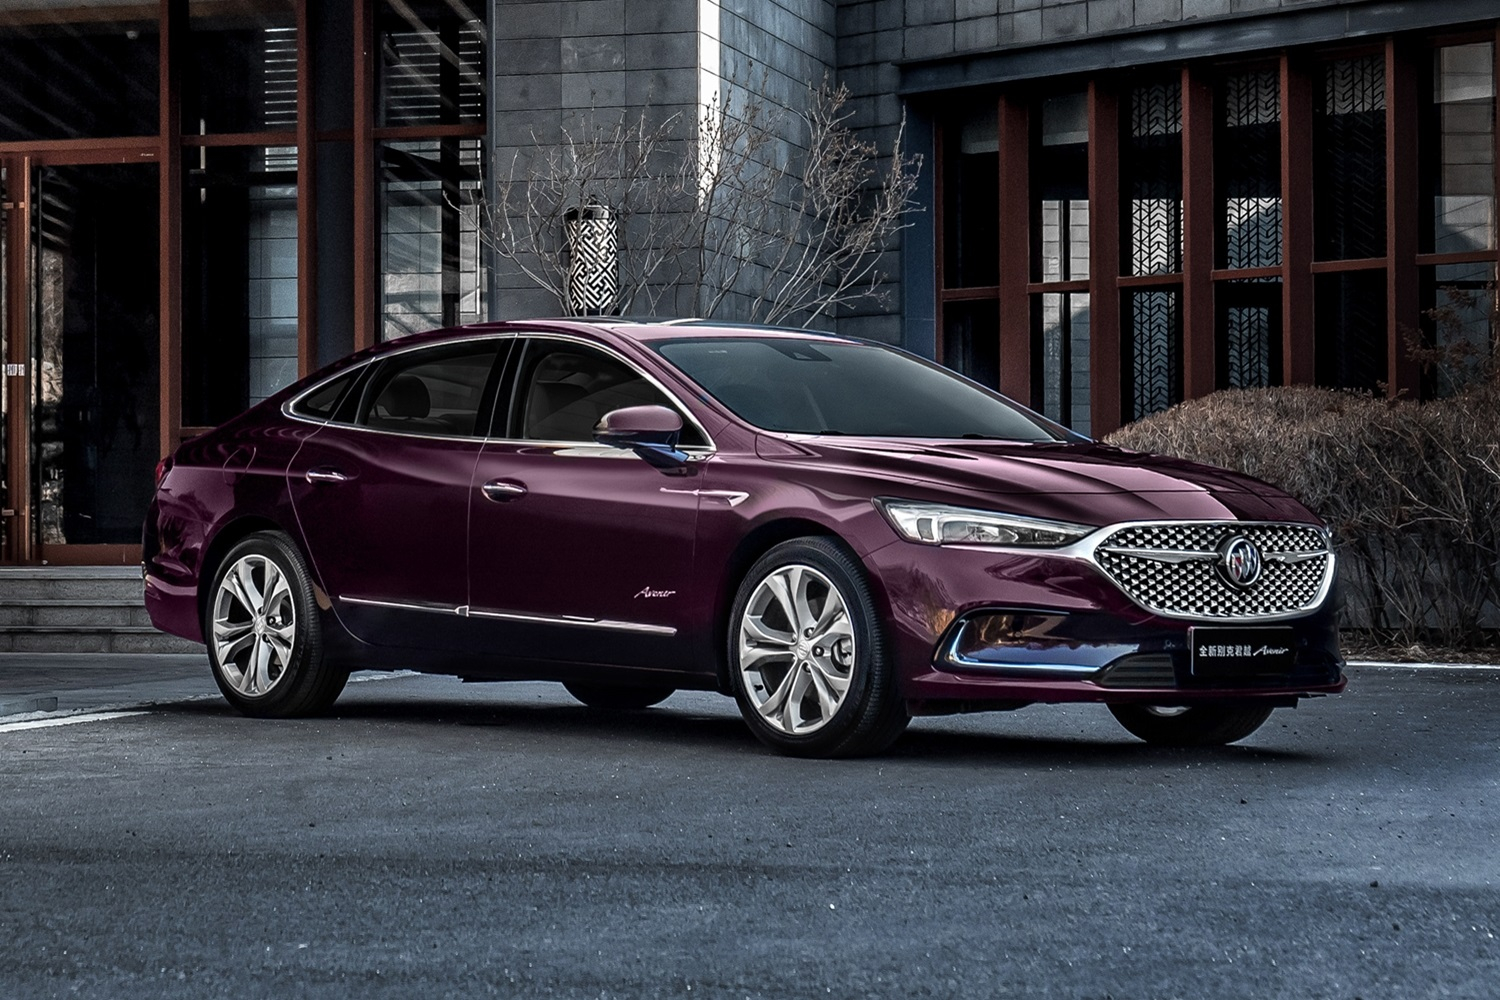 2021 Buick Lacrosse Gets More Refined Than Ever | Gm Authority When Will The New 2021 Buick Lacrosse Be Released